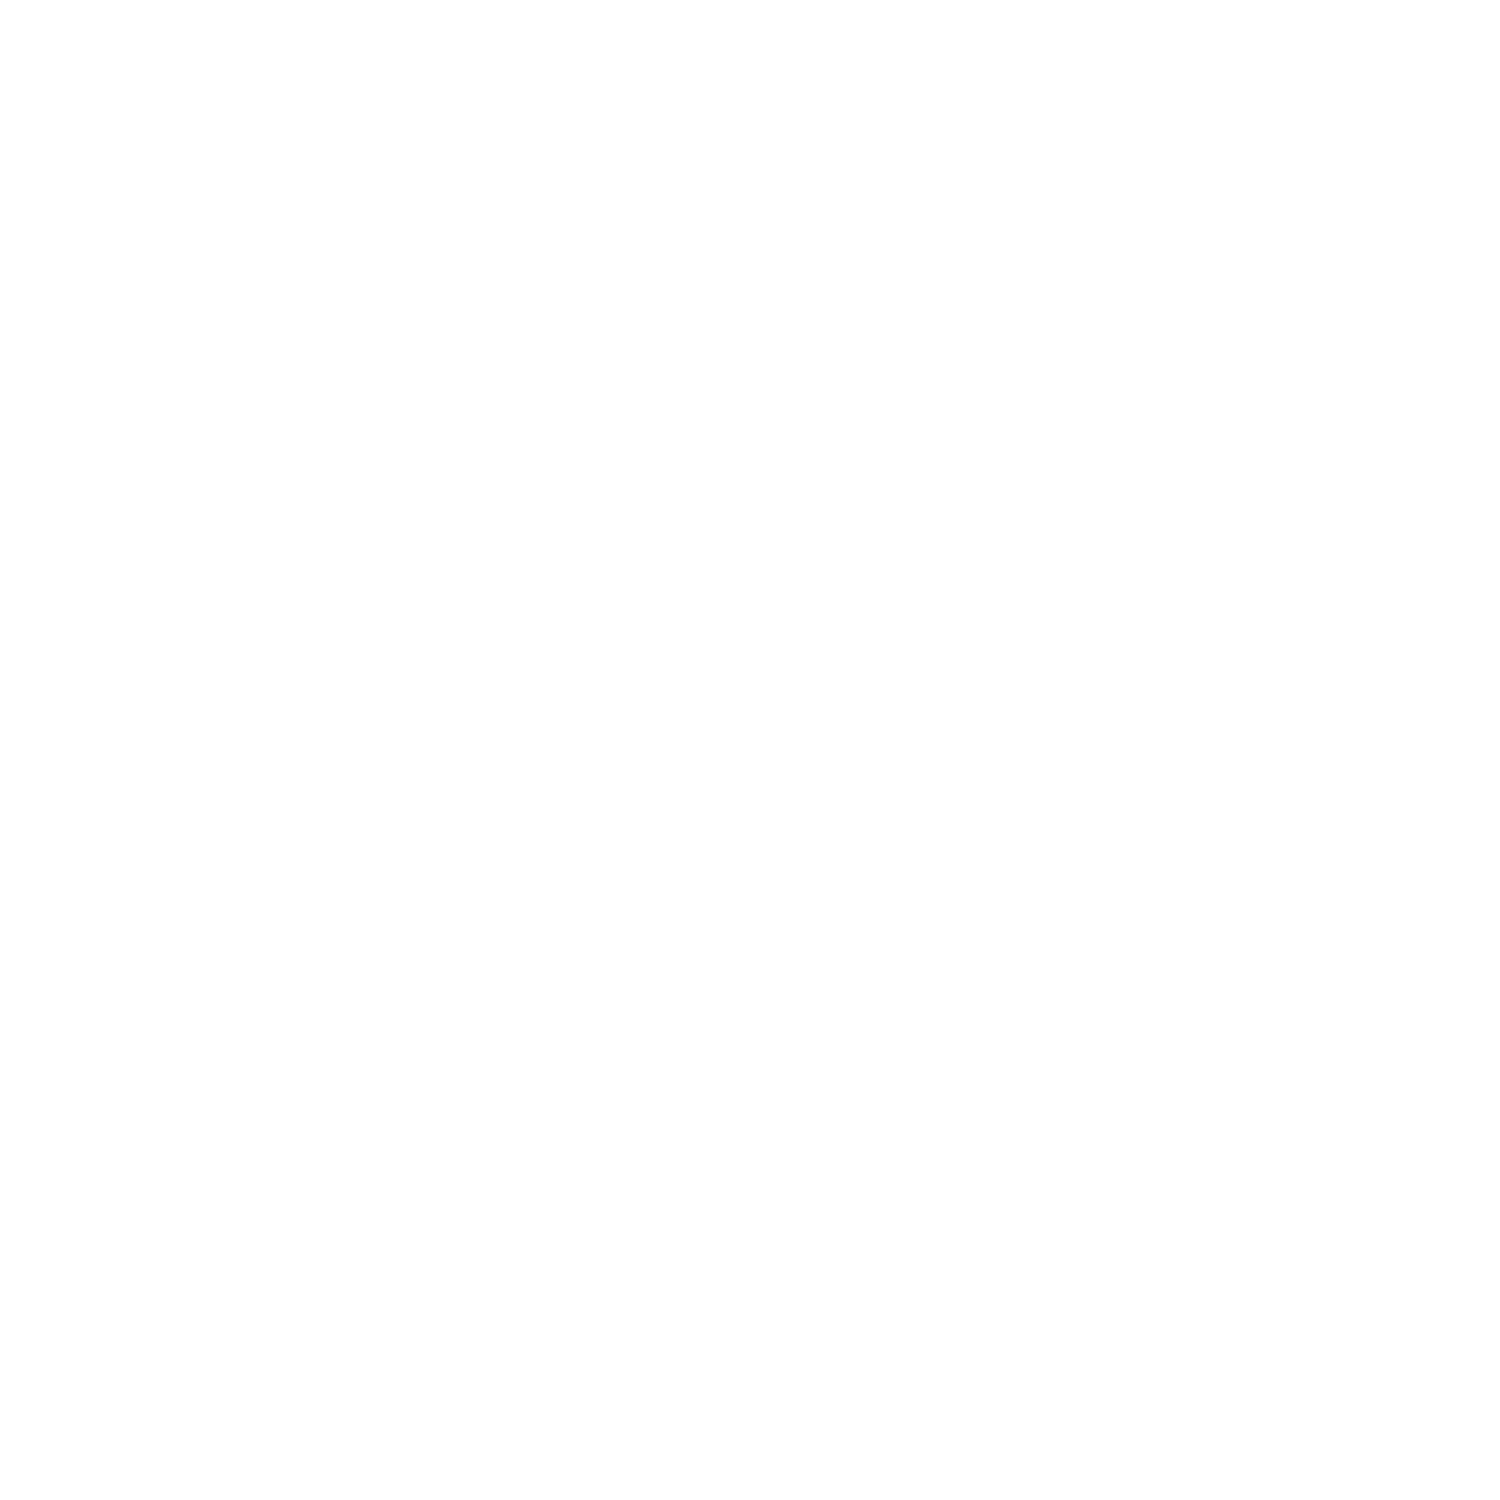 Nicole DuMond Photography